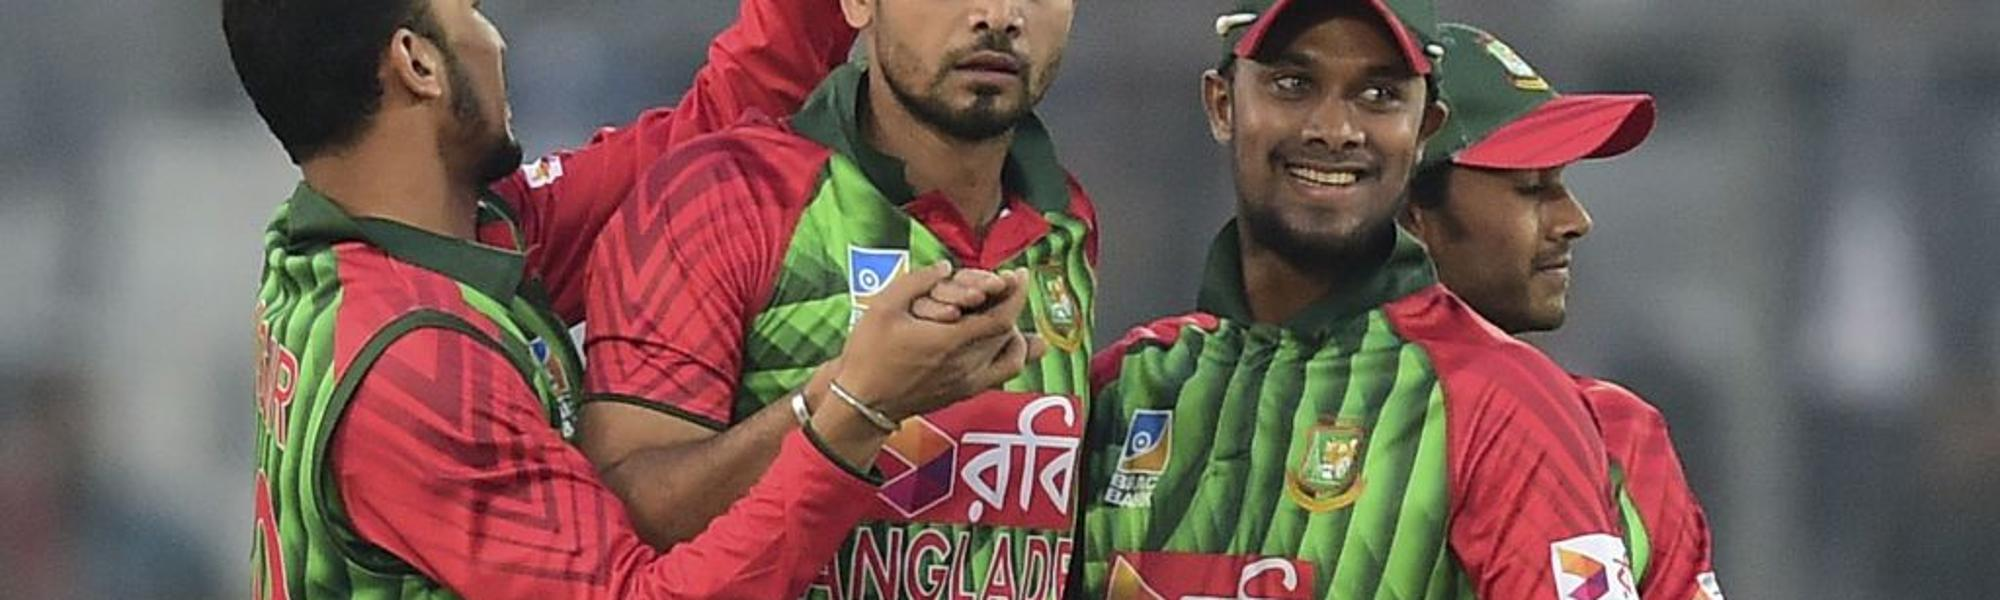 Captain Mashrafe Mortaza celebrates after the dismissal of Kusal Mendis